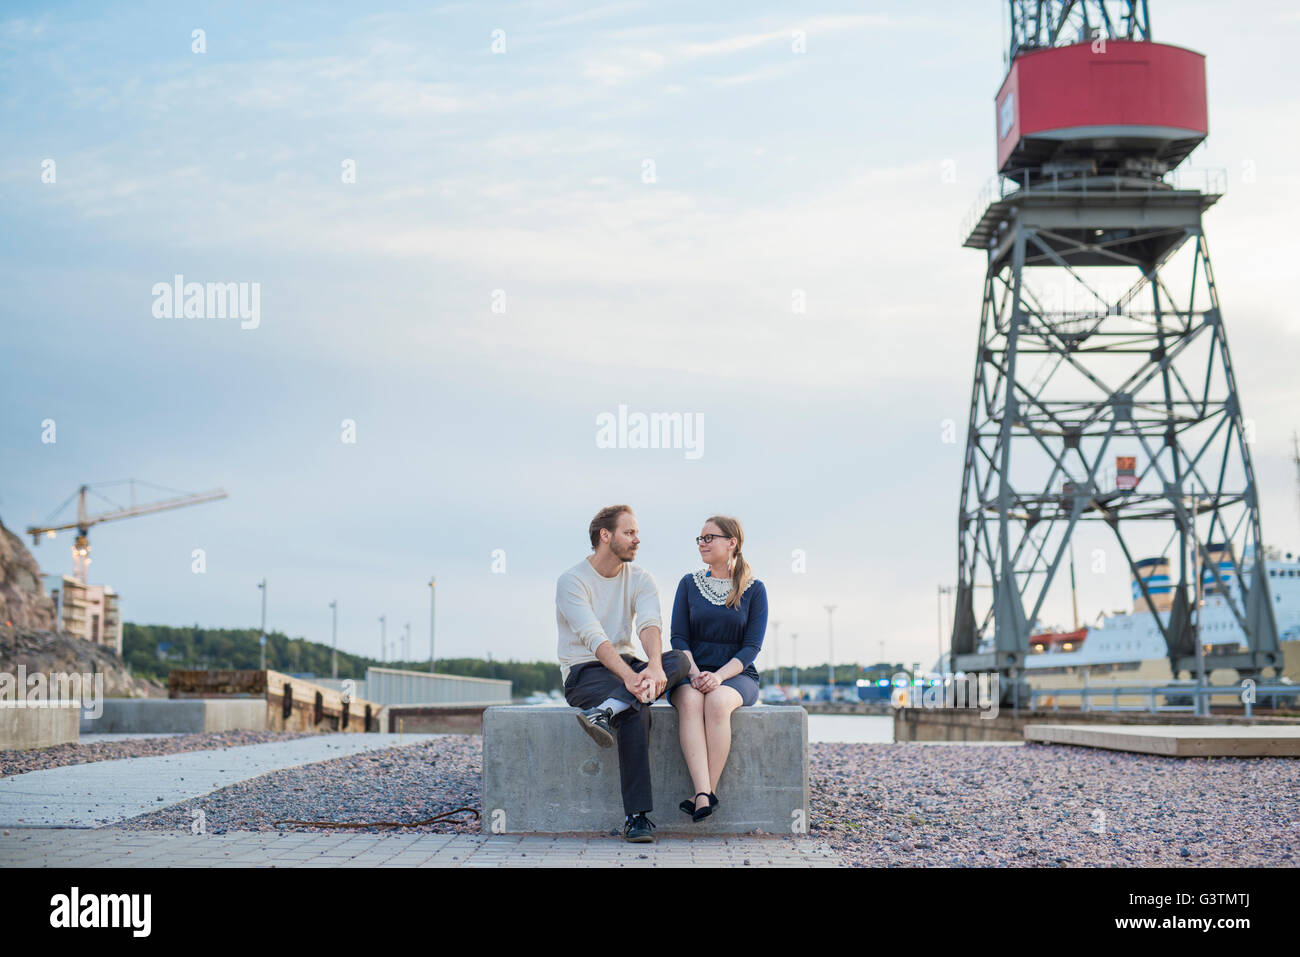 Finland, Varsinais-Suomi, Turku, Couple sitting on block and talking at construction site - Stock Image